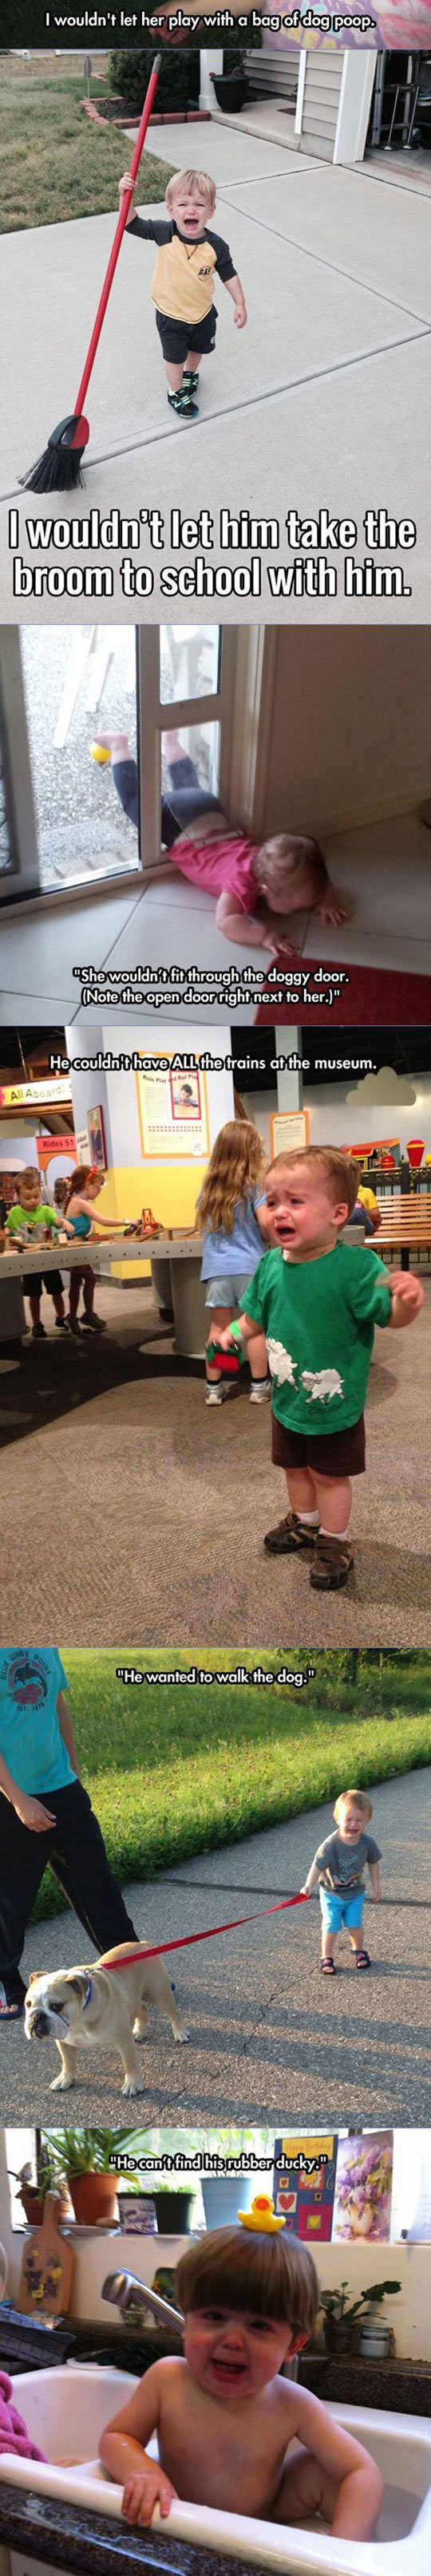 funny-kids-crying-for-ridiculous-reasons-broom